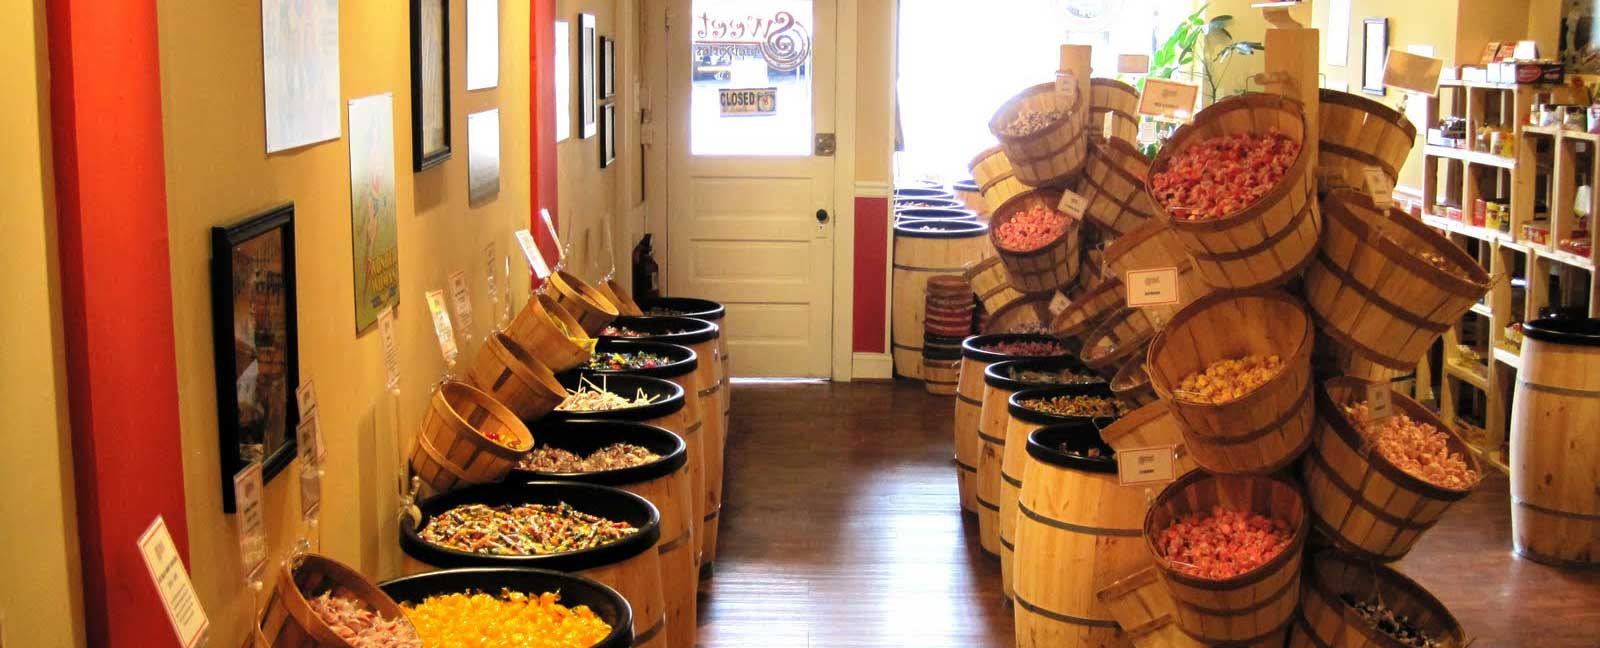 Wooden Barrel Displays 1